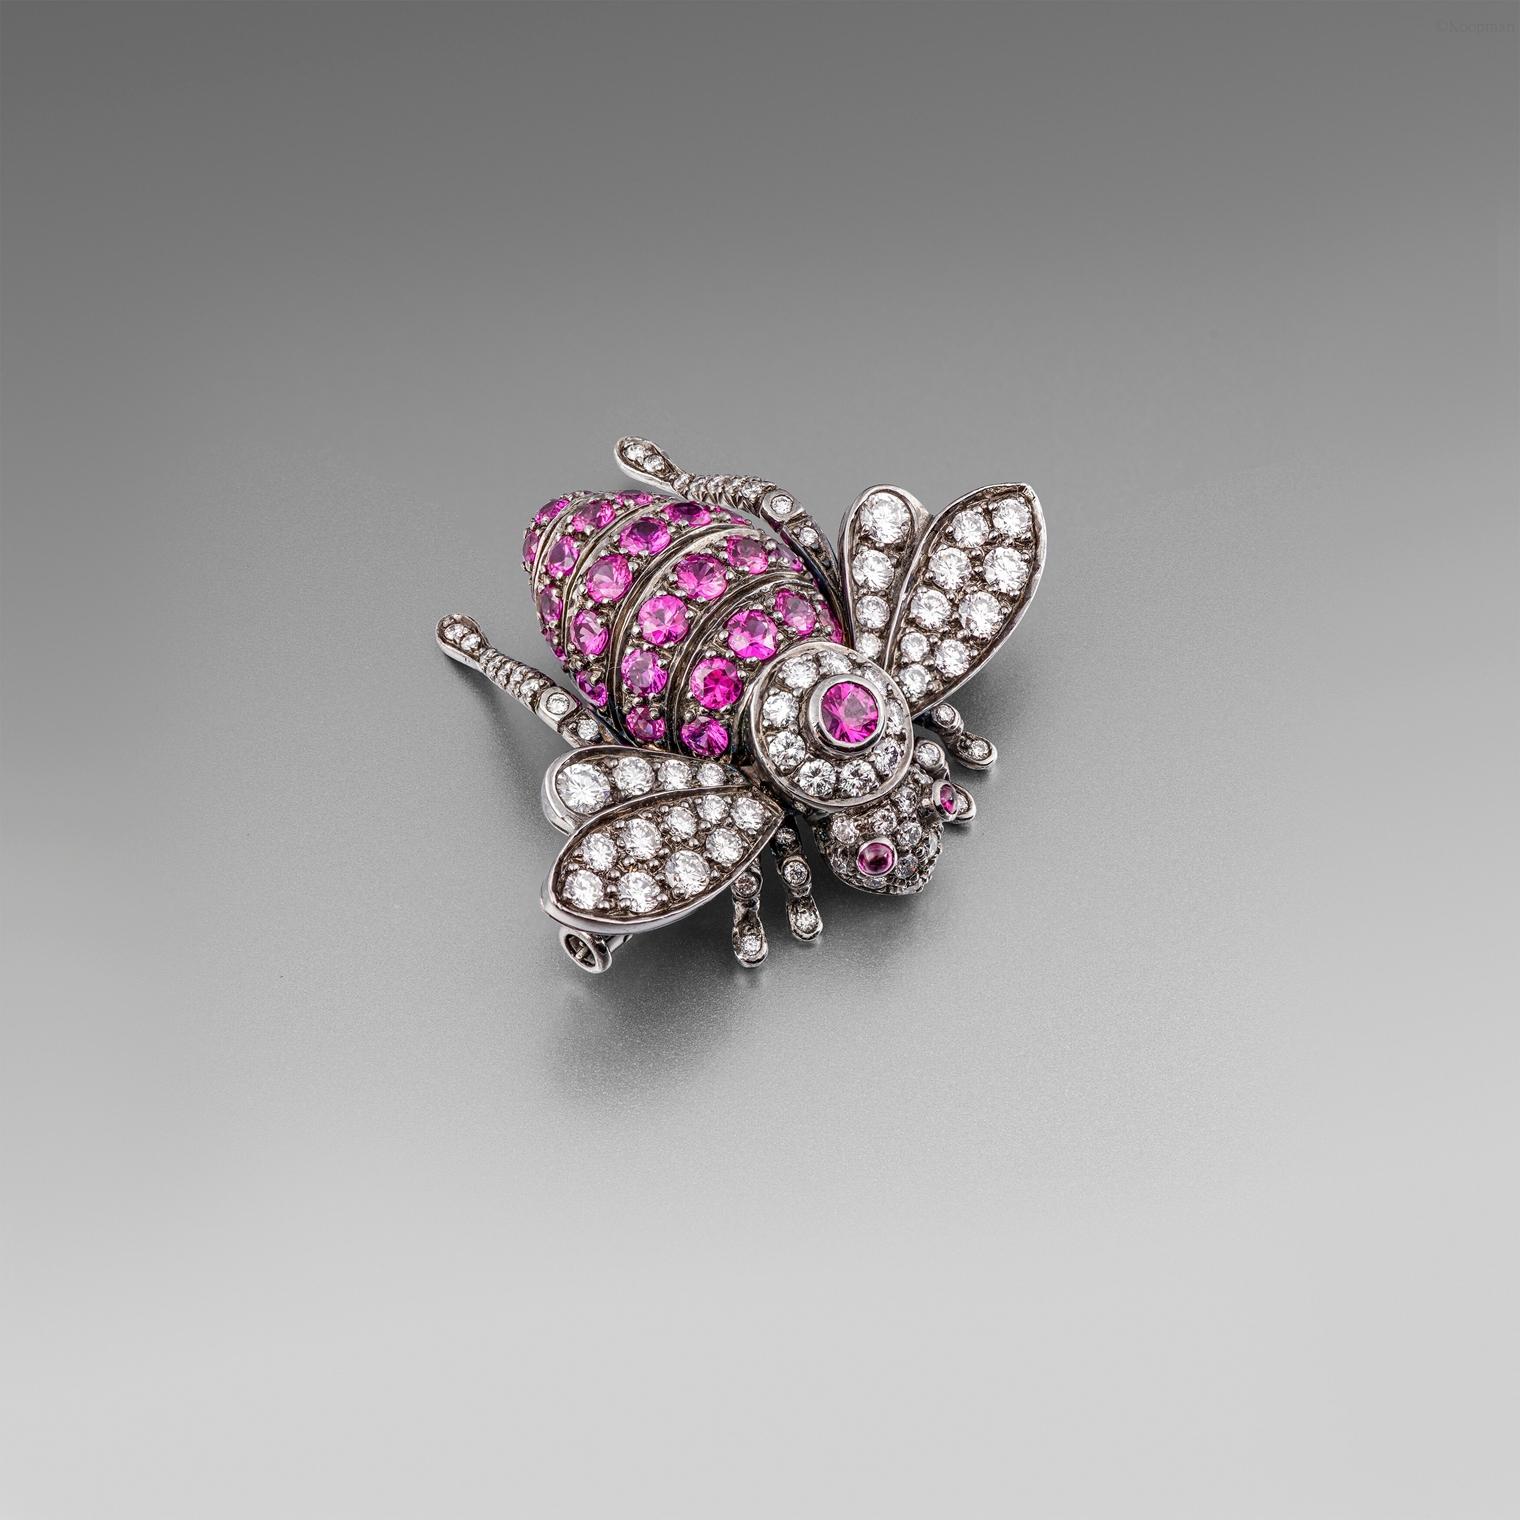 A Ruby and Diamonds Brooch by Sabbadini